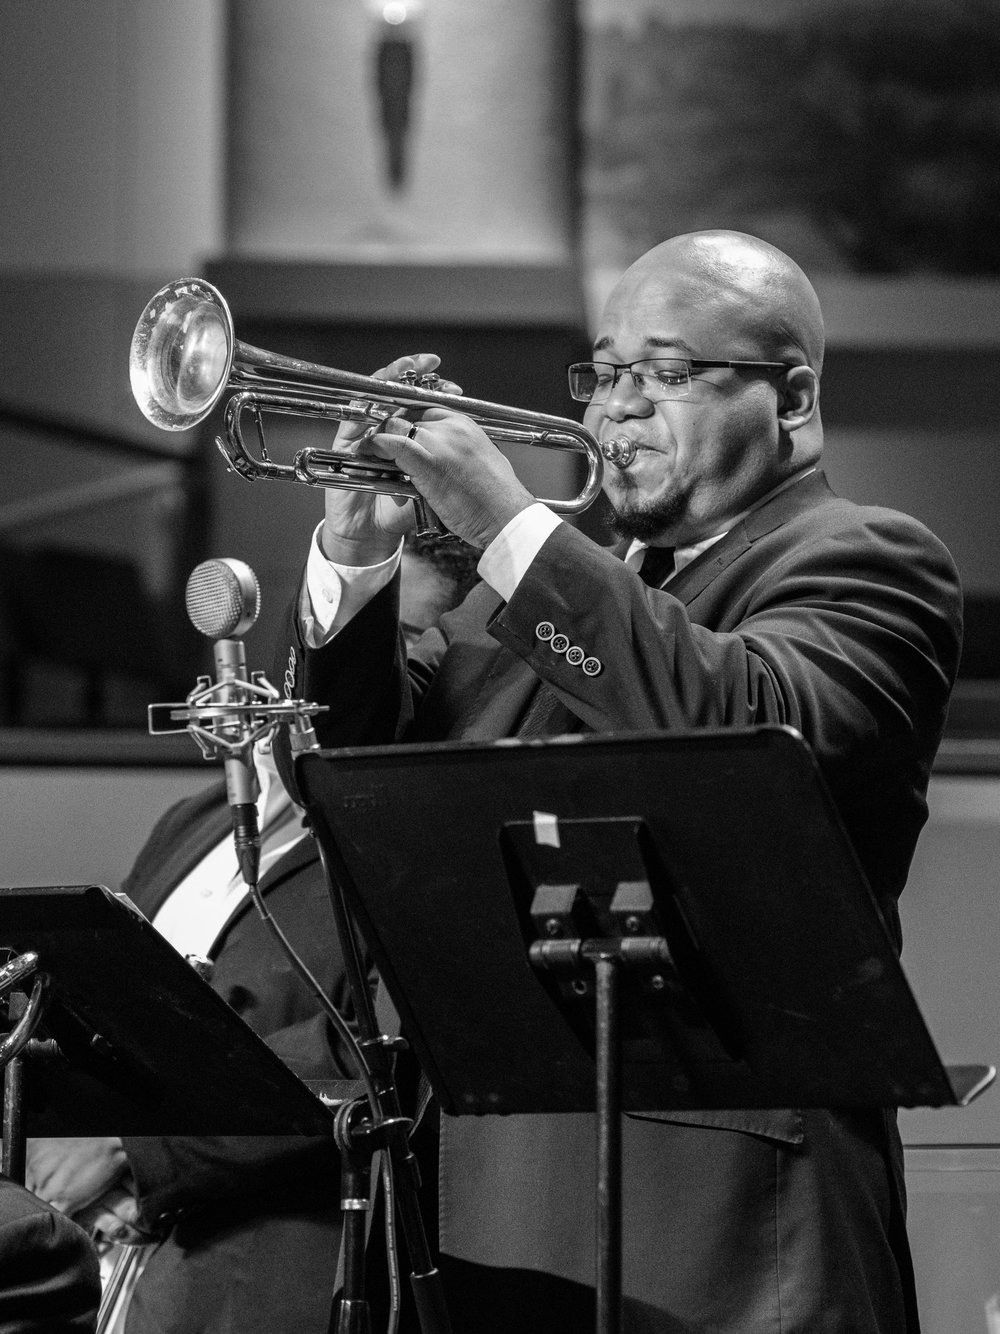 JAMES WILLIAMS, TRUMPET